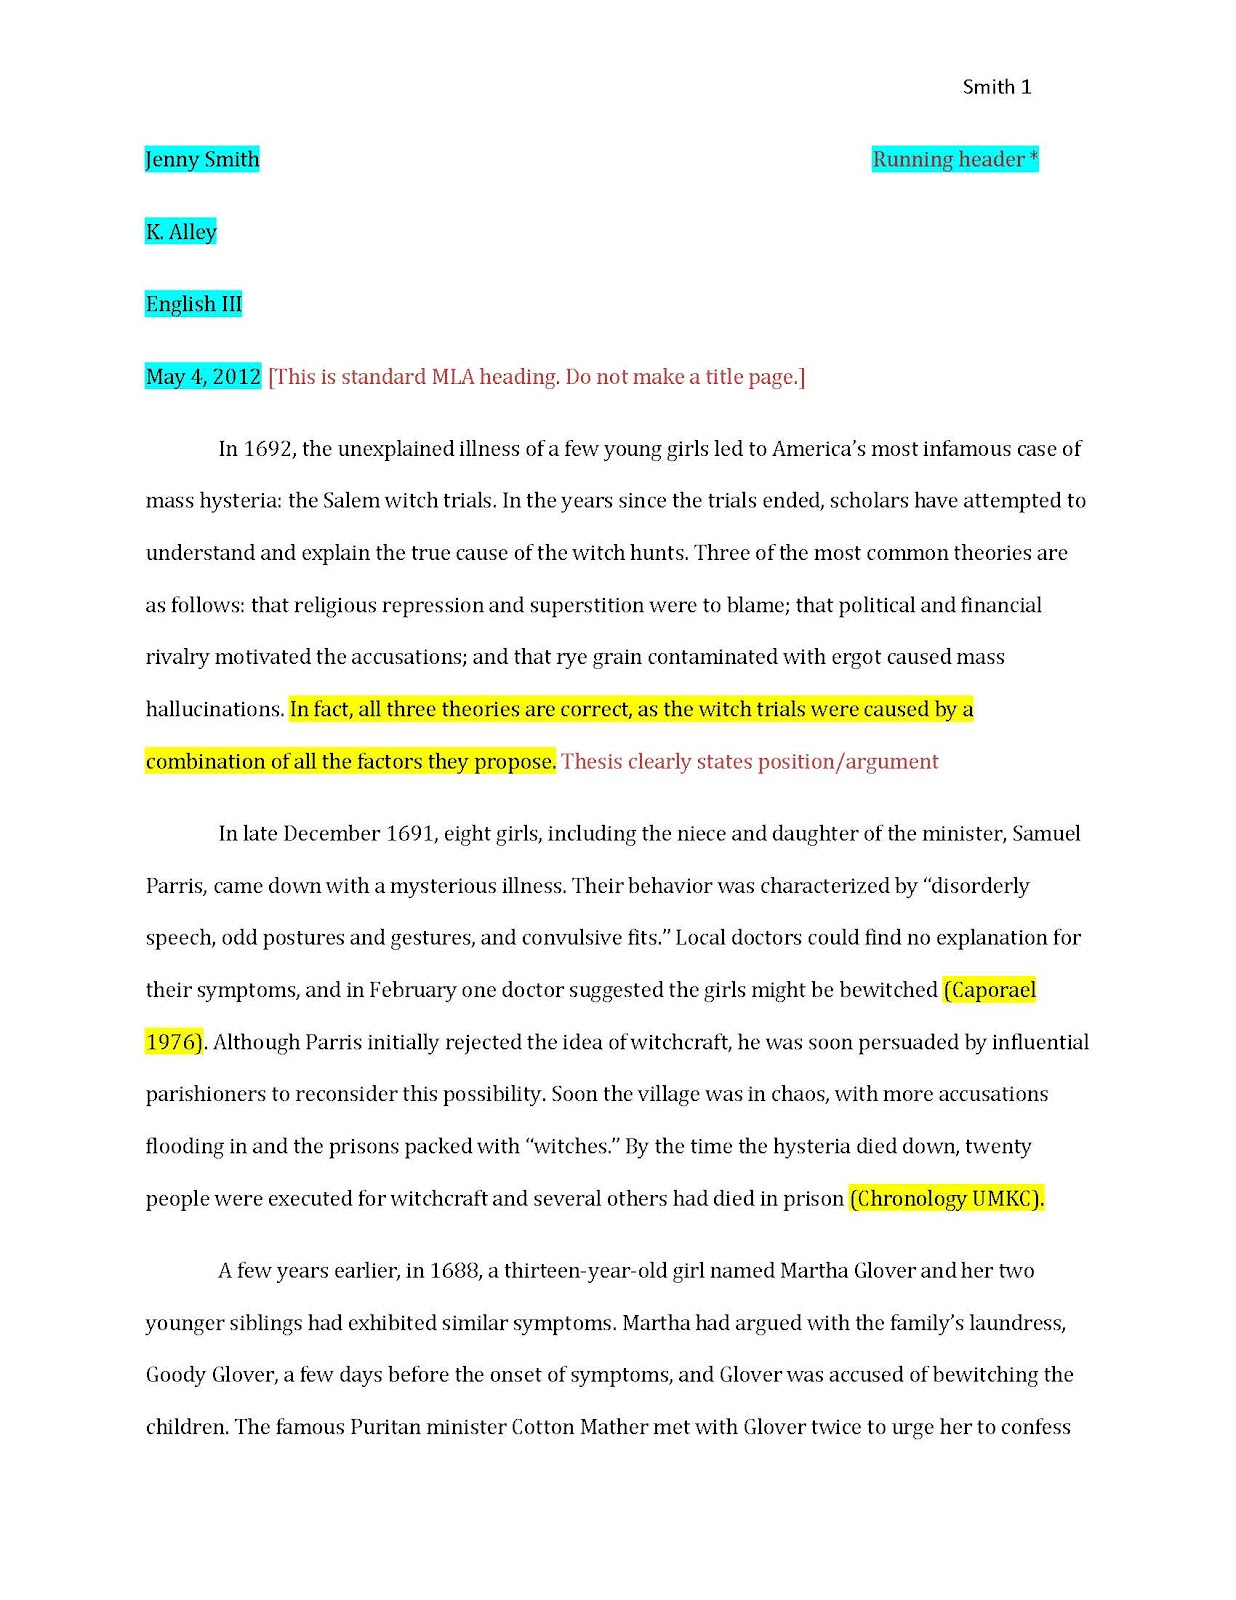 012 How To Cite Essaypaper Page 1 Wonderful A Essay Critical In Book Mla Your Own Format An 8th Edition Full